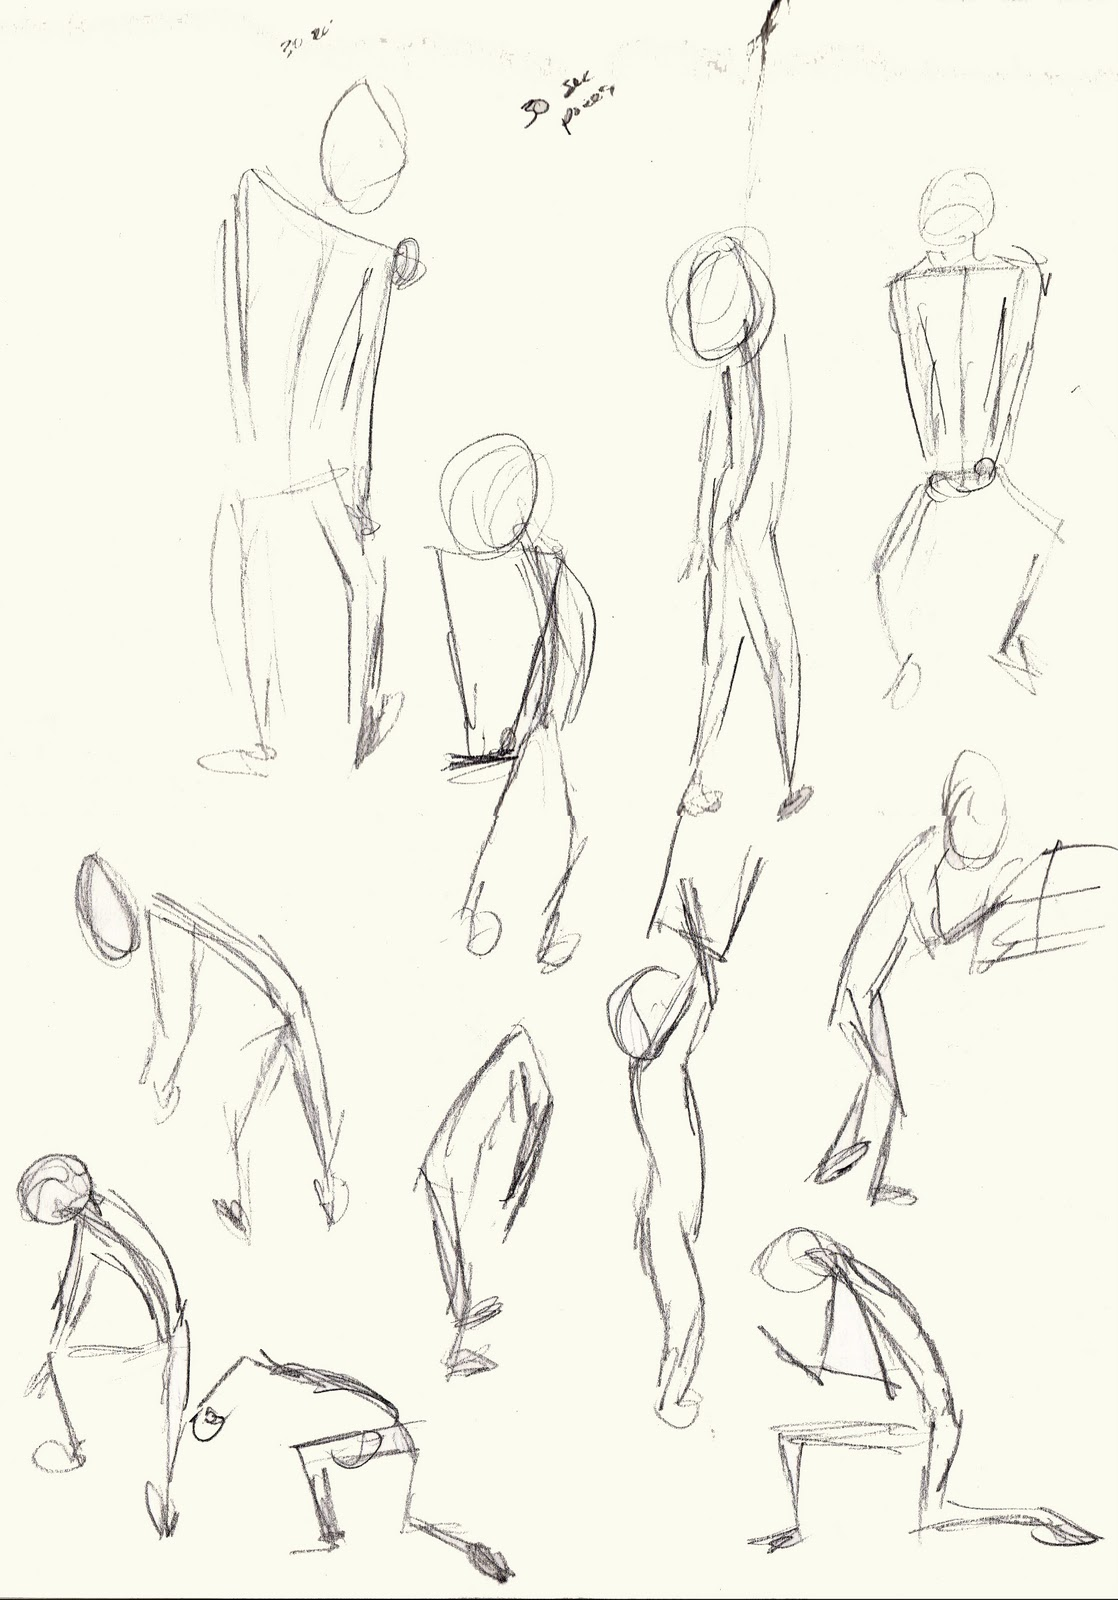 Nick Wake S Observational Drawing 1 December